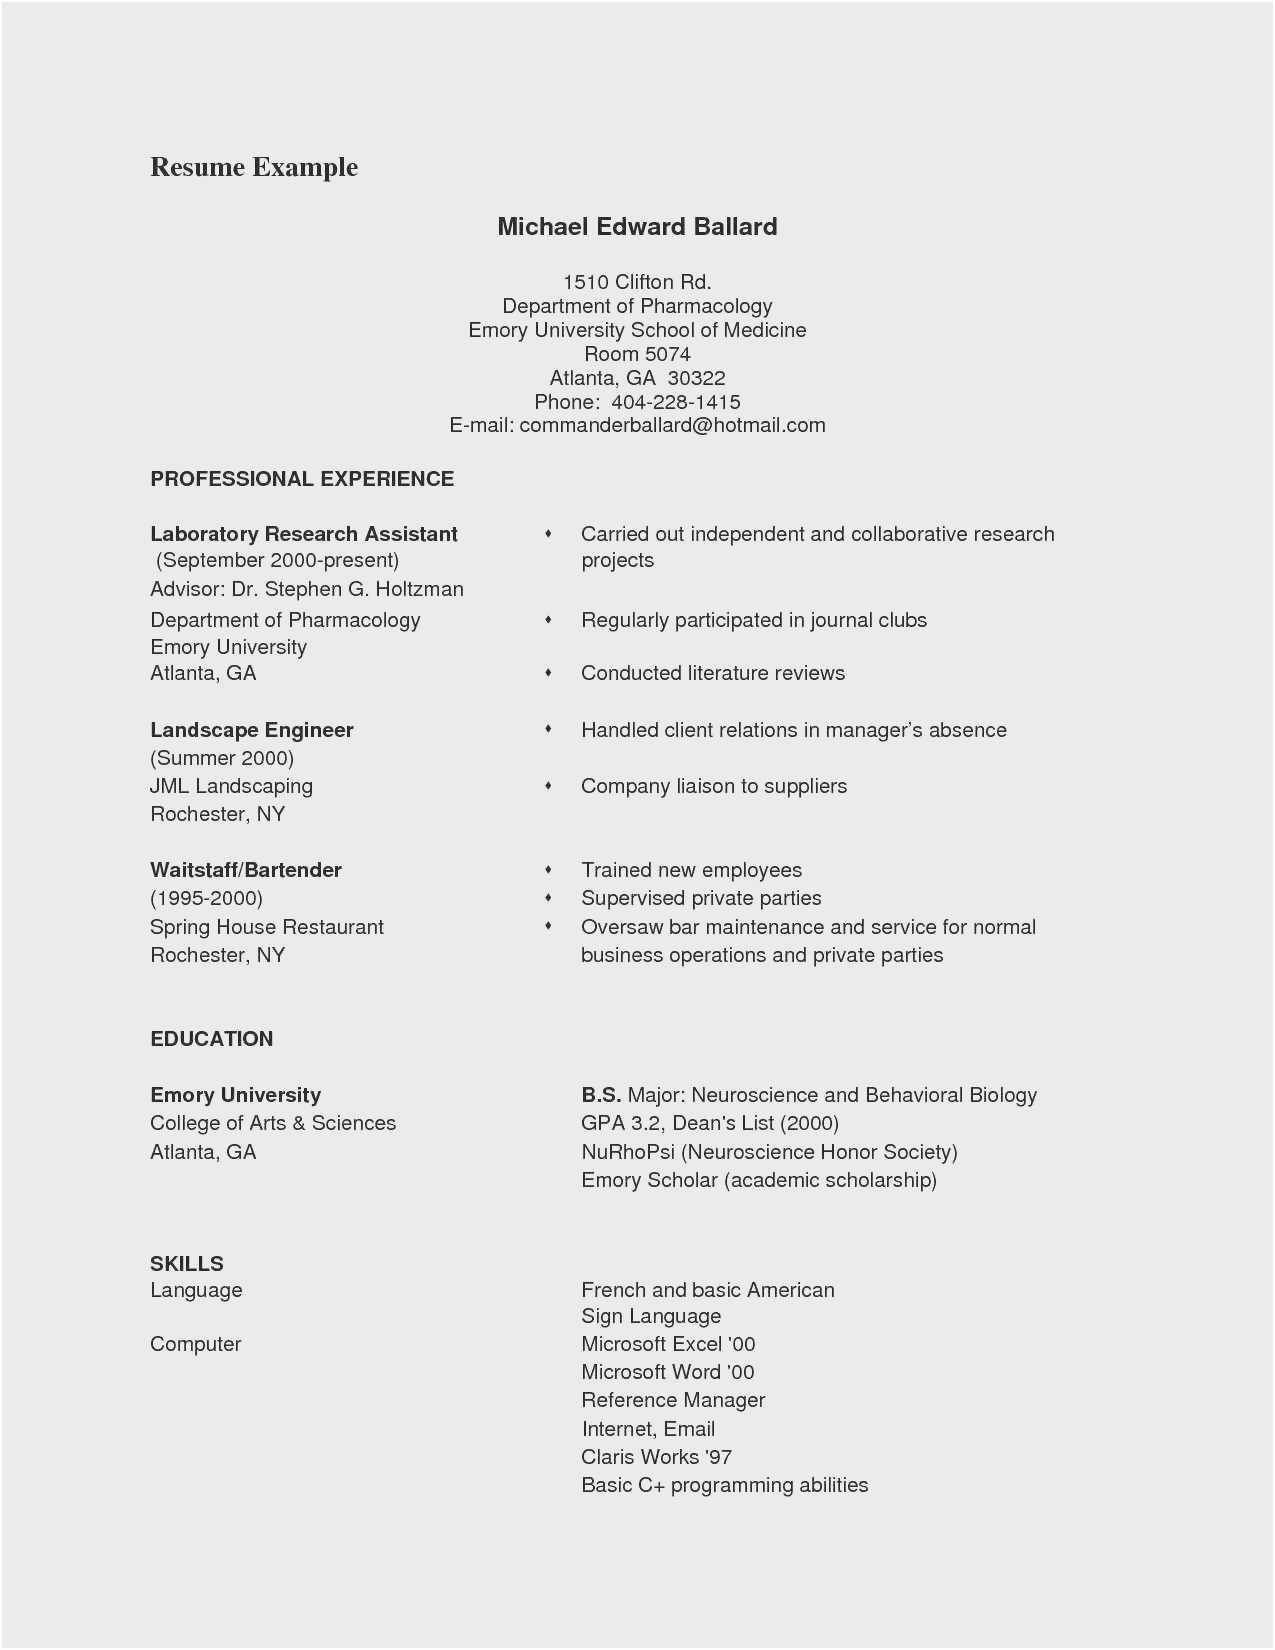 Acting Resume Templates For Microsoft Word Best Of Free Download 60 Free Downloadable Resume Templates For Word Proposal Jurnal Surat